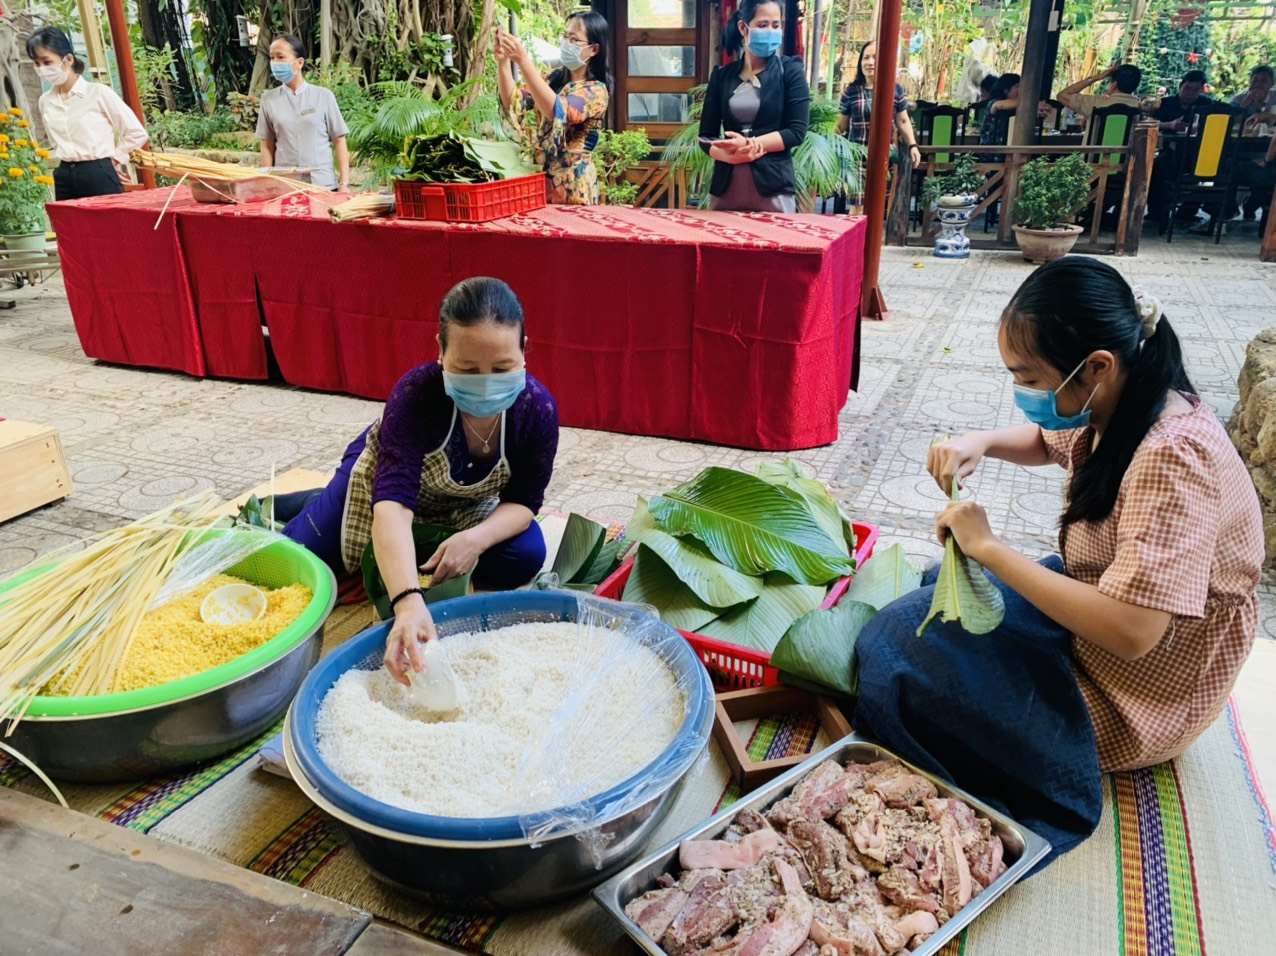 The hotel prepares ingredients to make Banh Chung including glutinous rice, mung beans, pork, and dong leaves